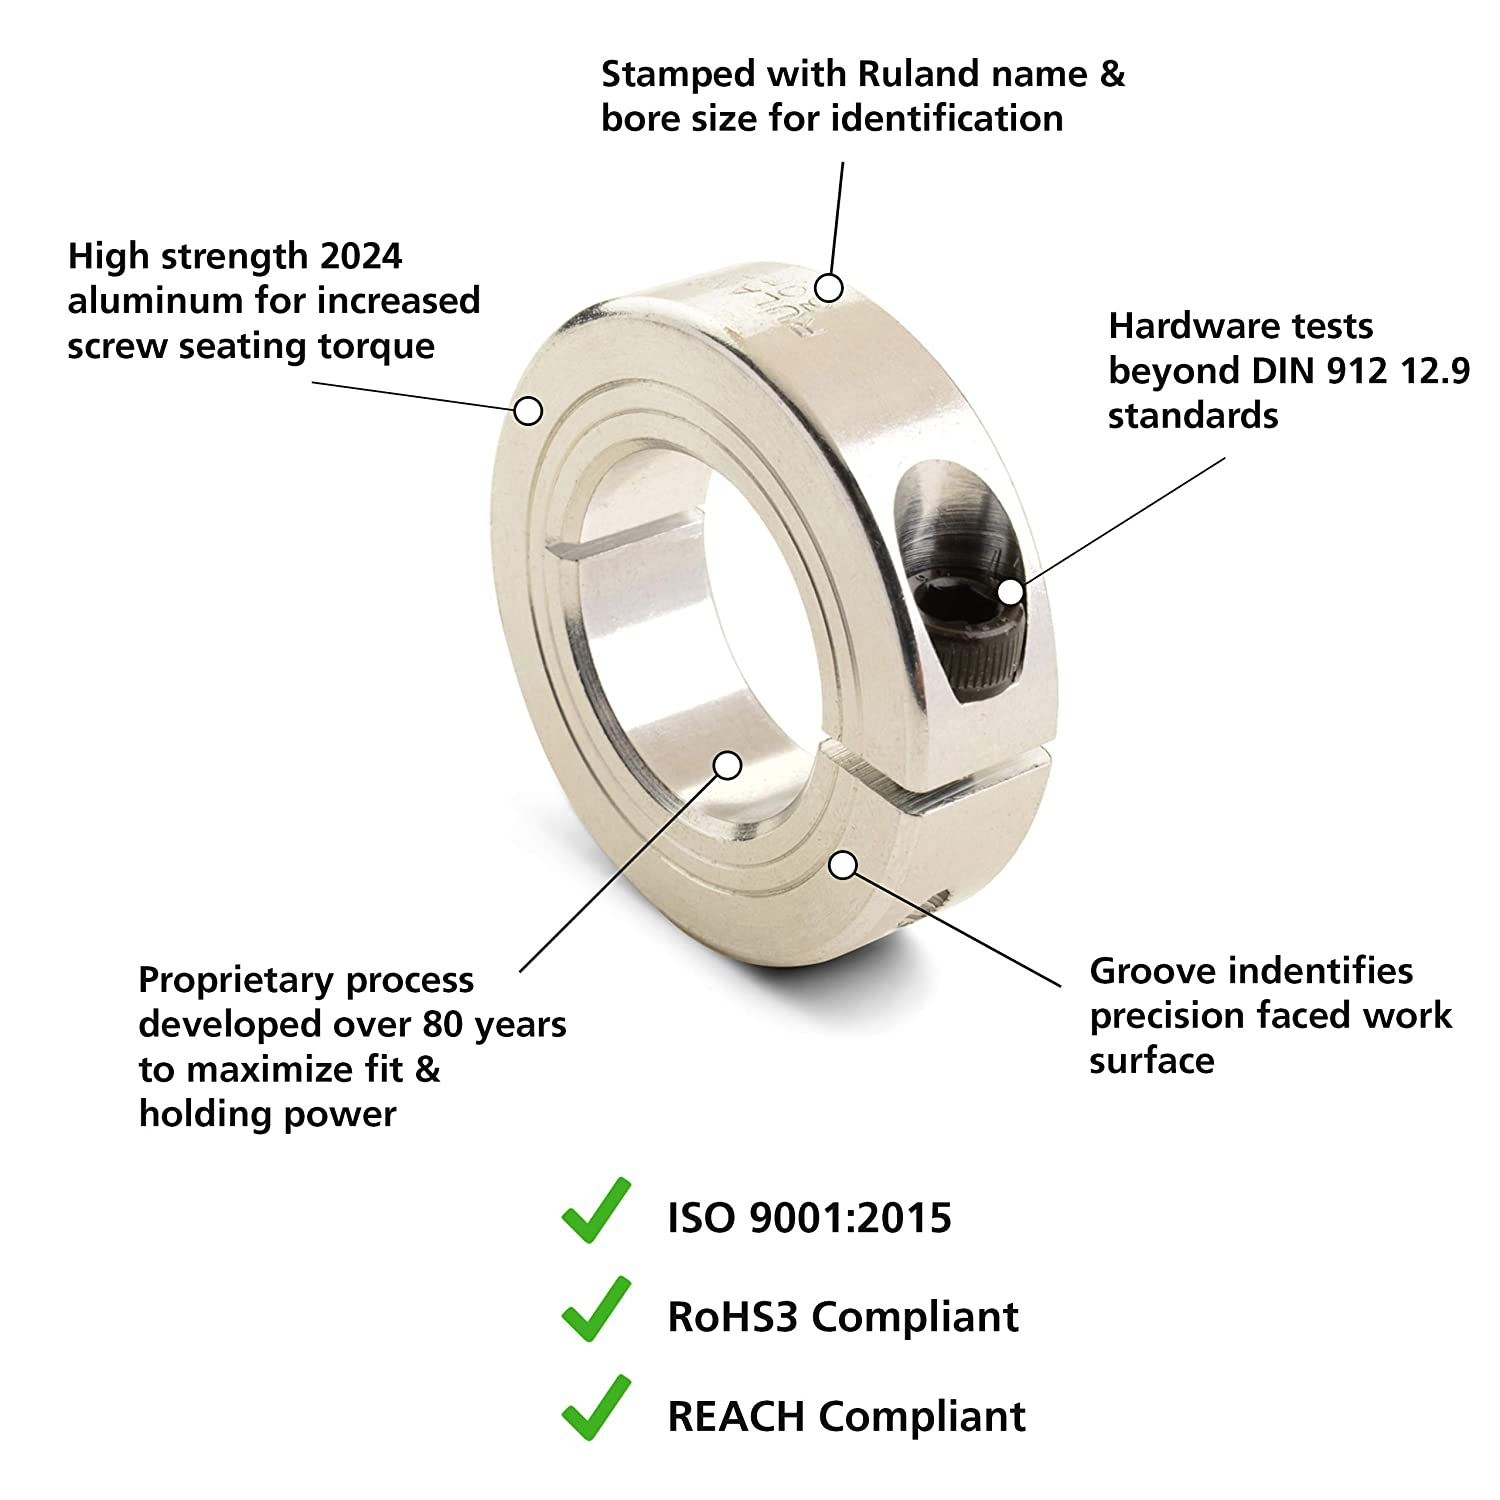 Ruland MQCL-10-A Quick Clamping Shaft Collar 38mm OD 10mm Width Ruland Manufacturing B0063KSPMG Anodized Aluminum Metric 10mm Bore